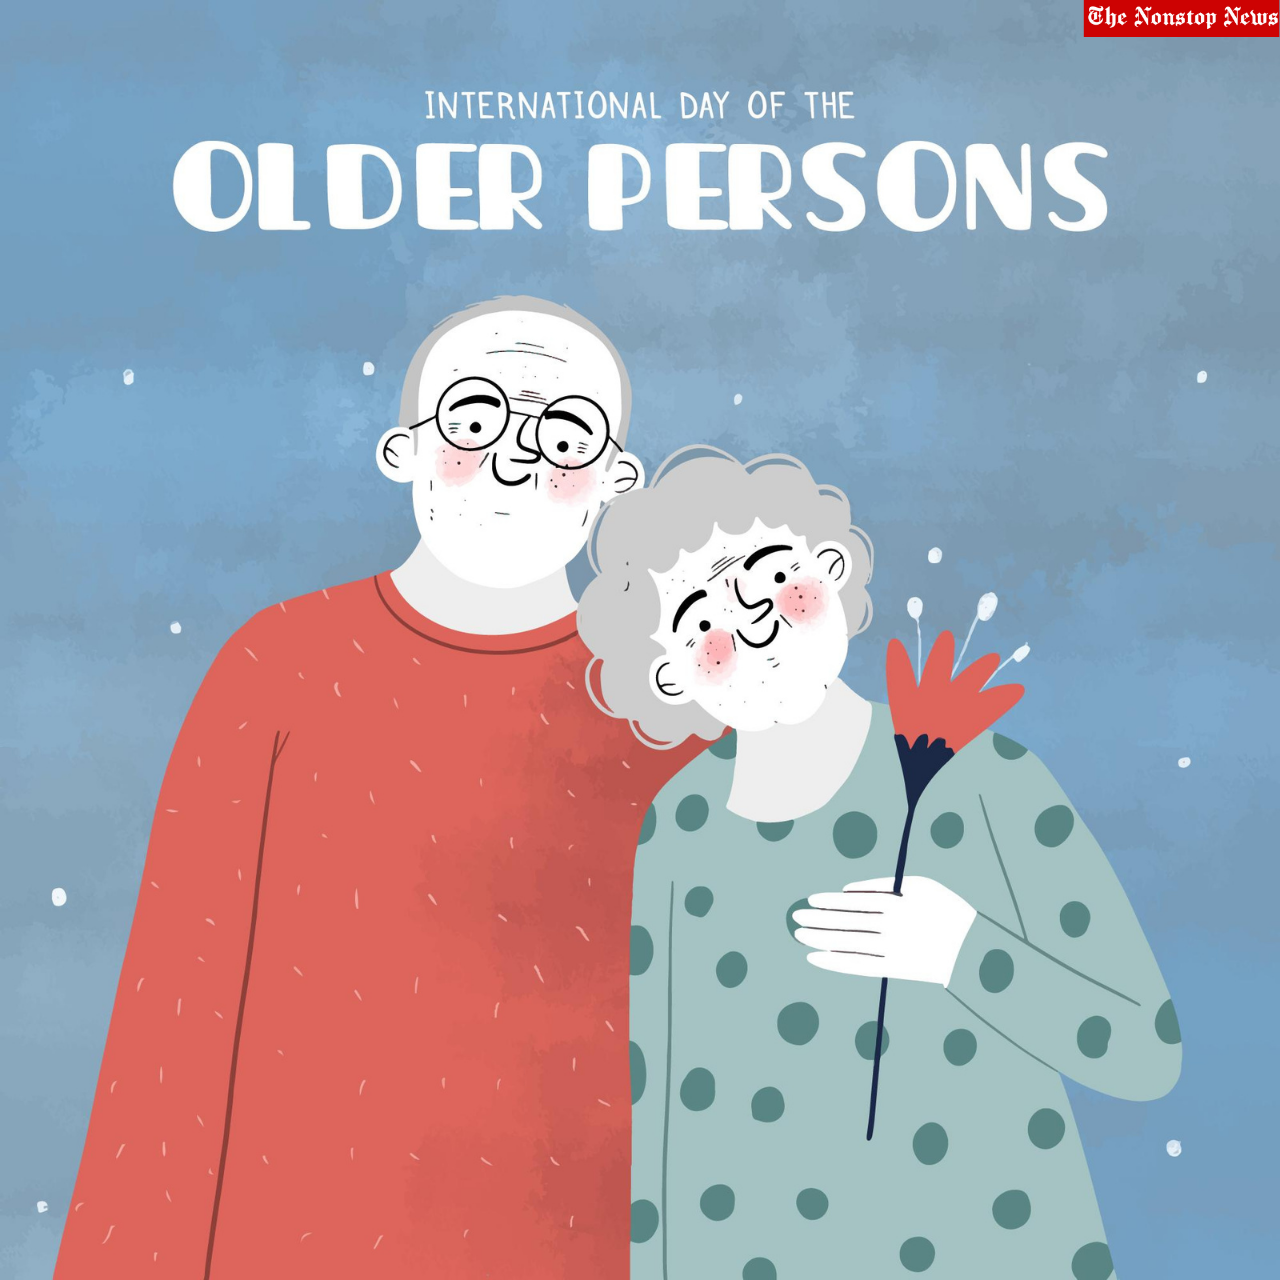 International Day of the Older Persons 2021 Quotes, Wishes, Images, Poster, Messages, Greetings, and Stickers to Share